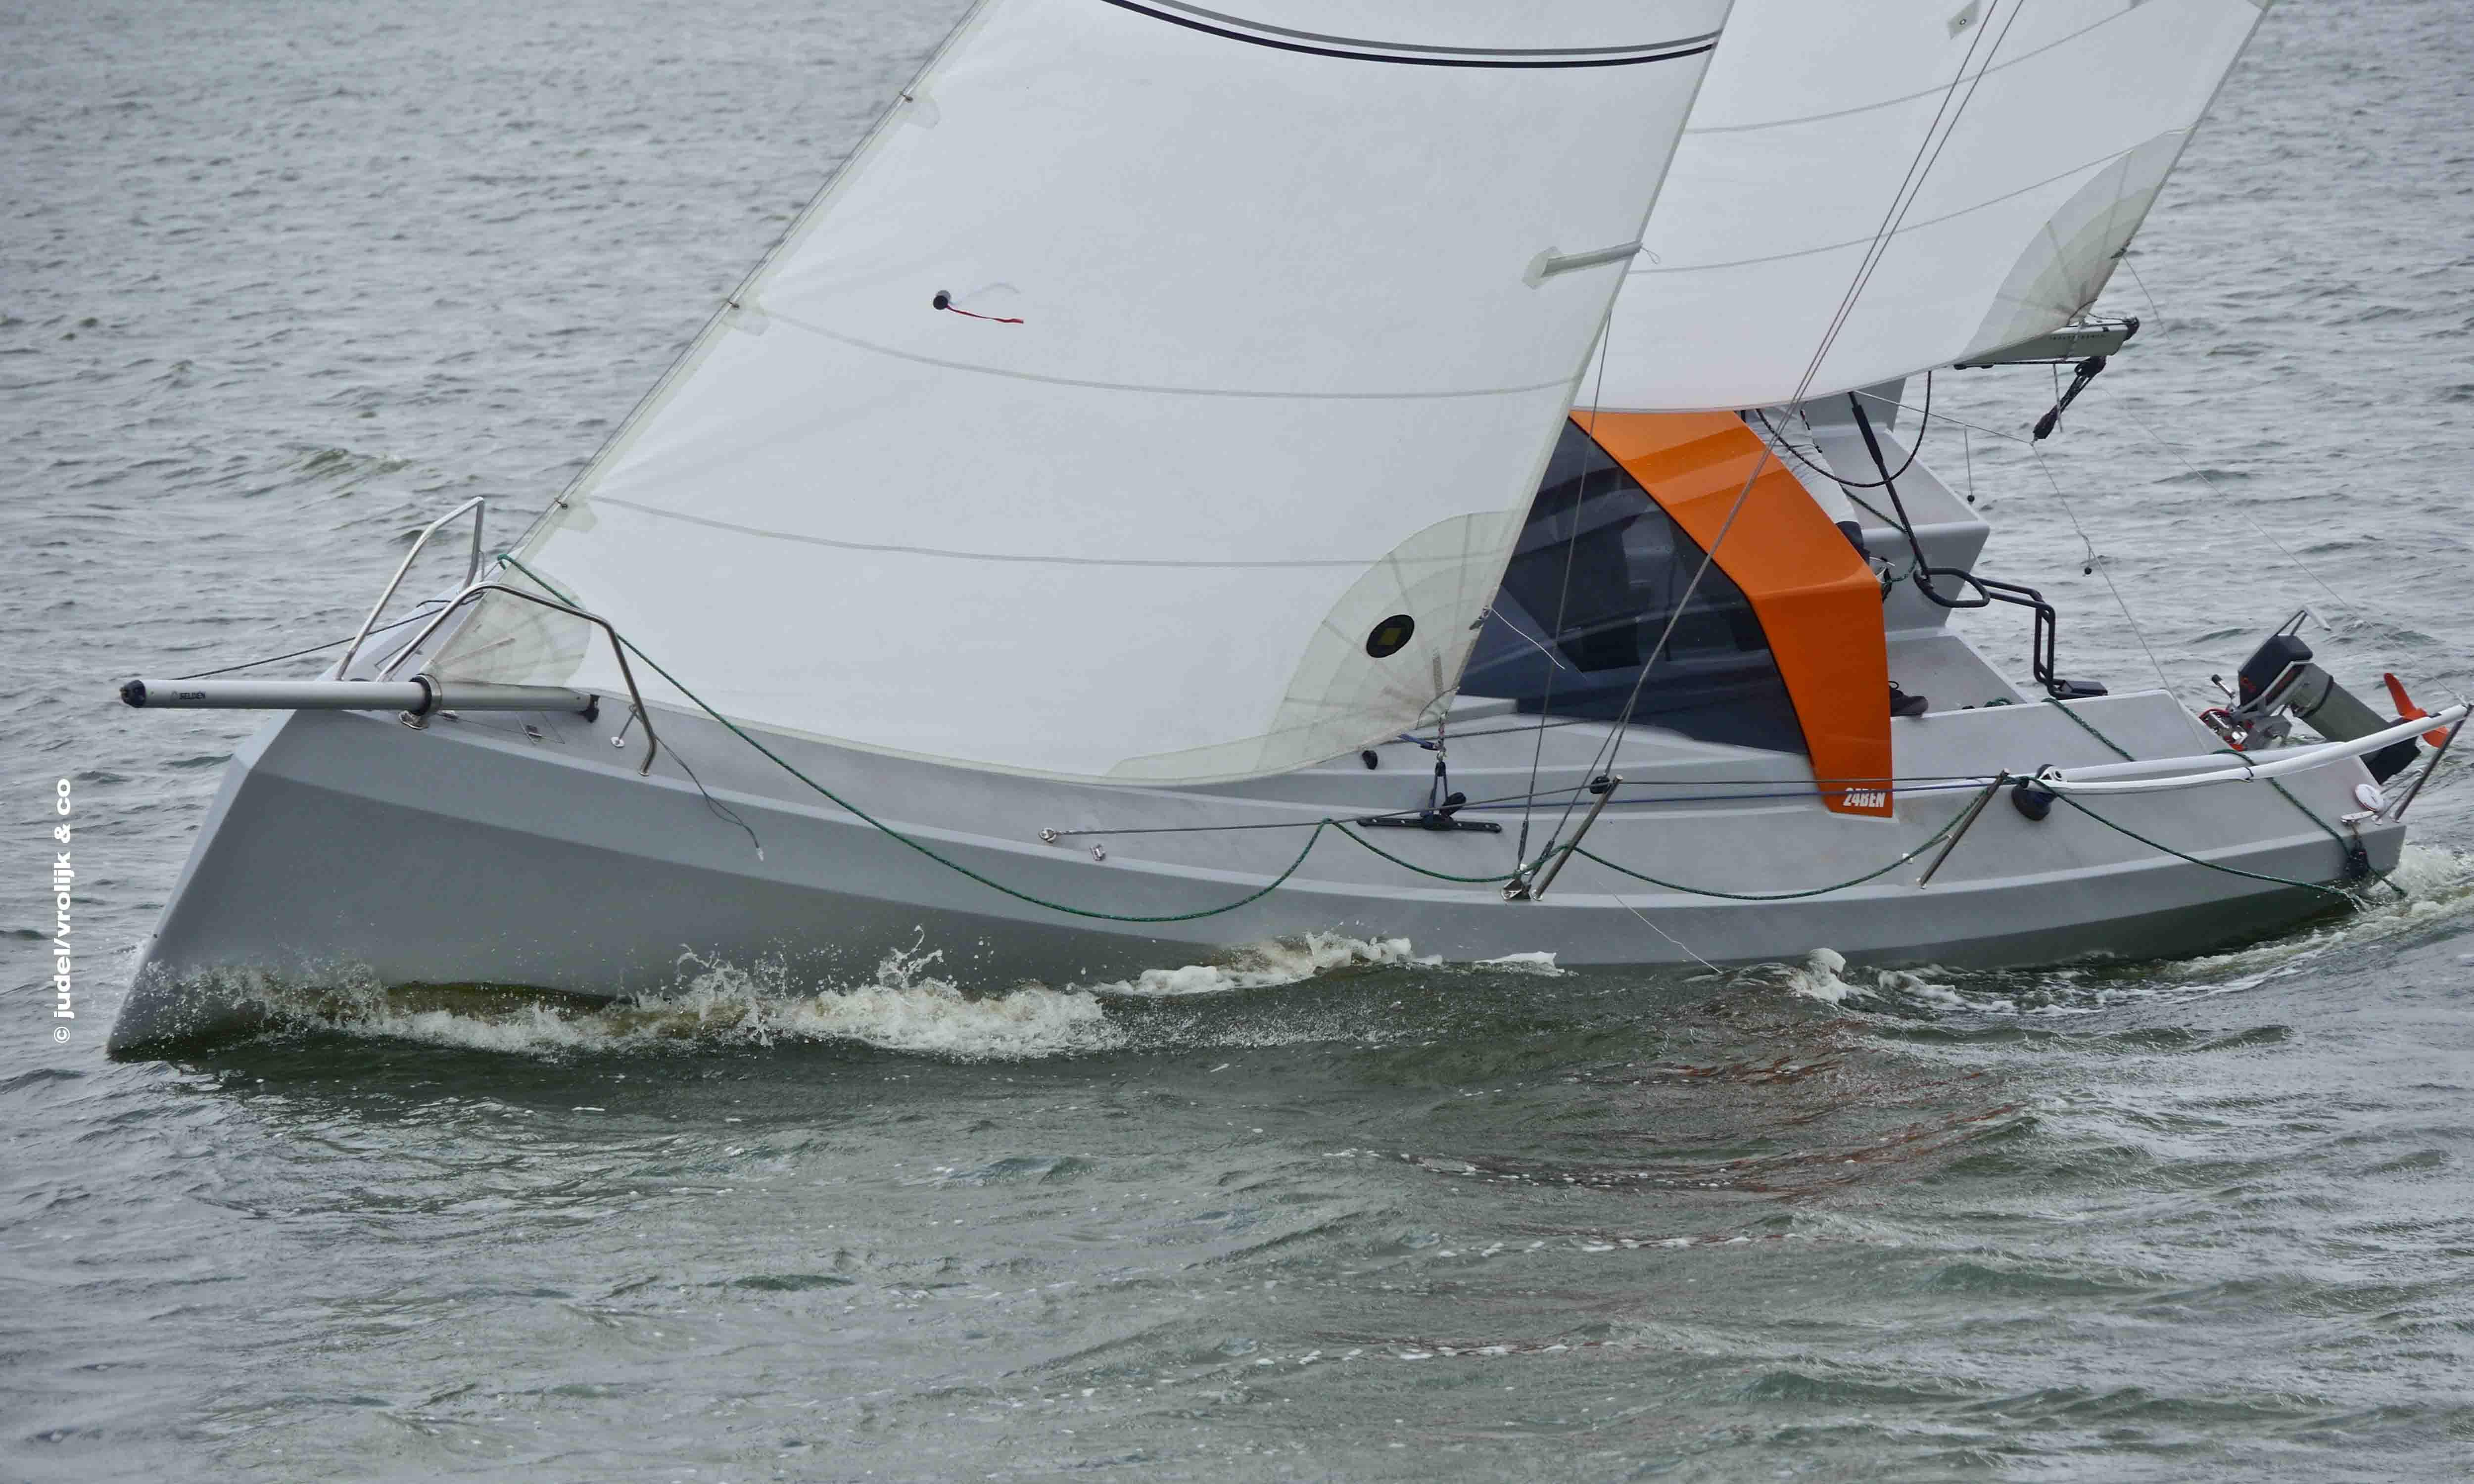 2018 Bente 24 Sail Boat For Sale Wwwyachtworldcom